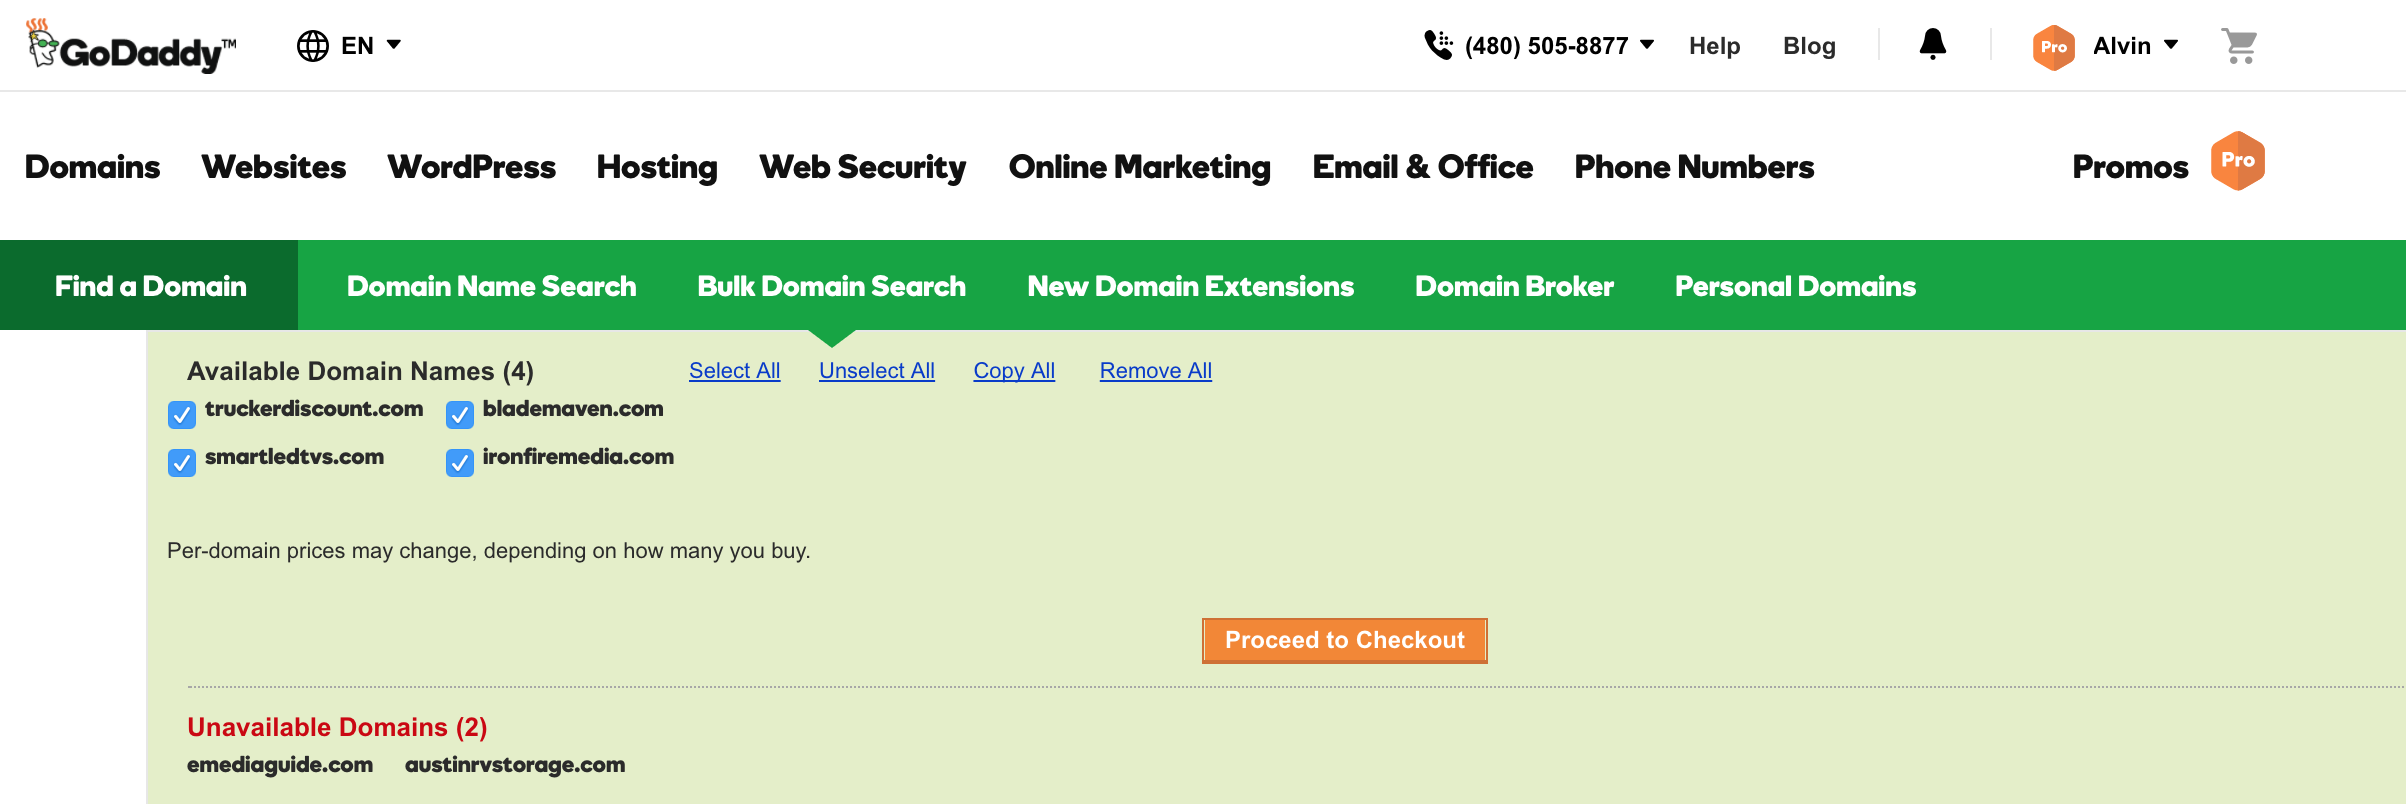 GoDaddy Domains > Bulk Search Results